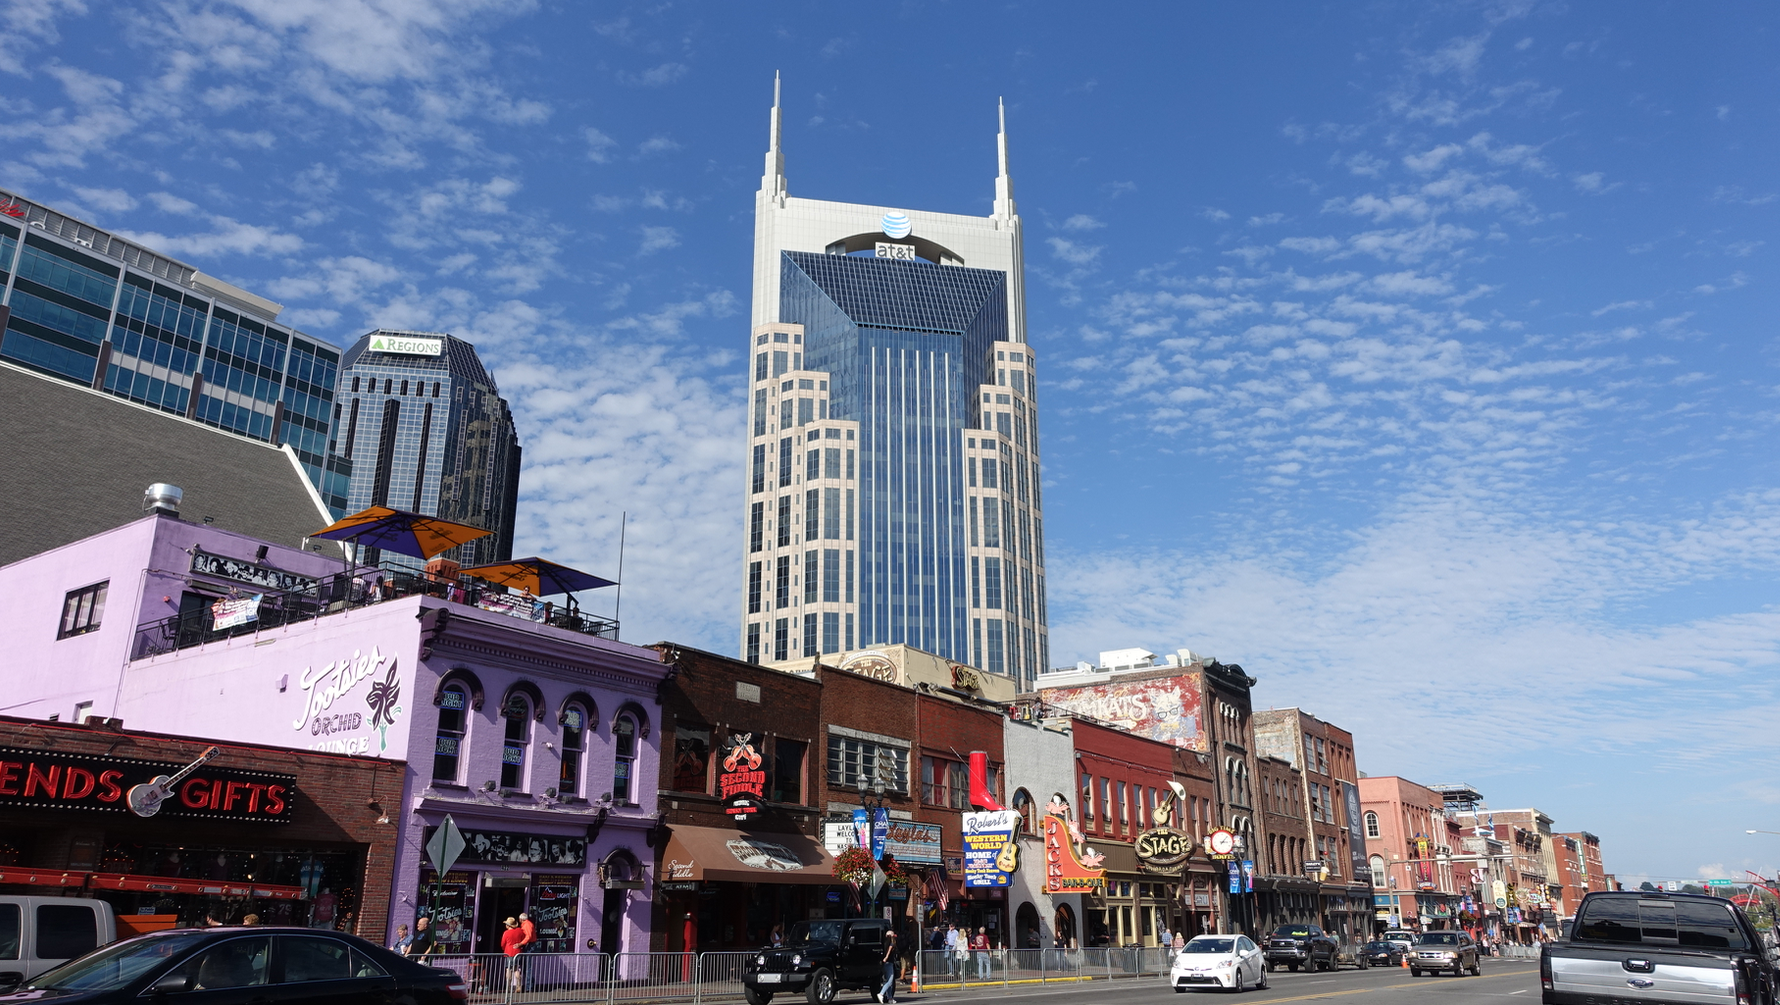 While Nashville's City Centre is undergoing a massive makeover, lower Broadway is still an eclectic collection of gritty buildings from yesteryears.